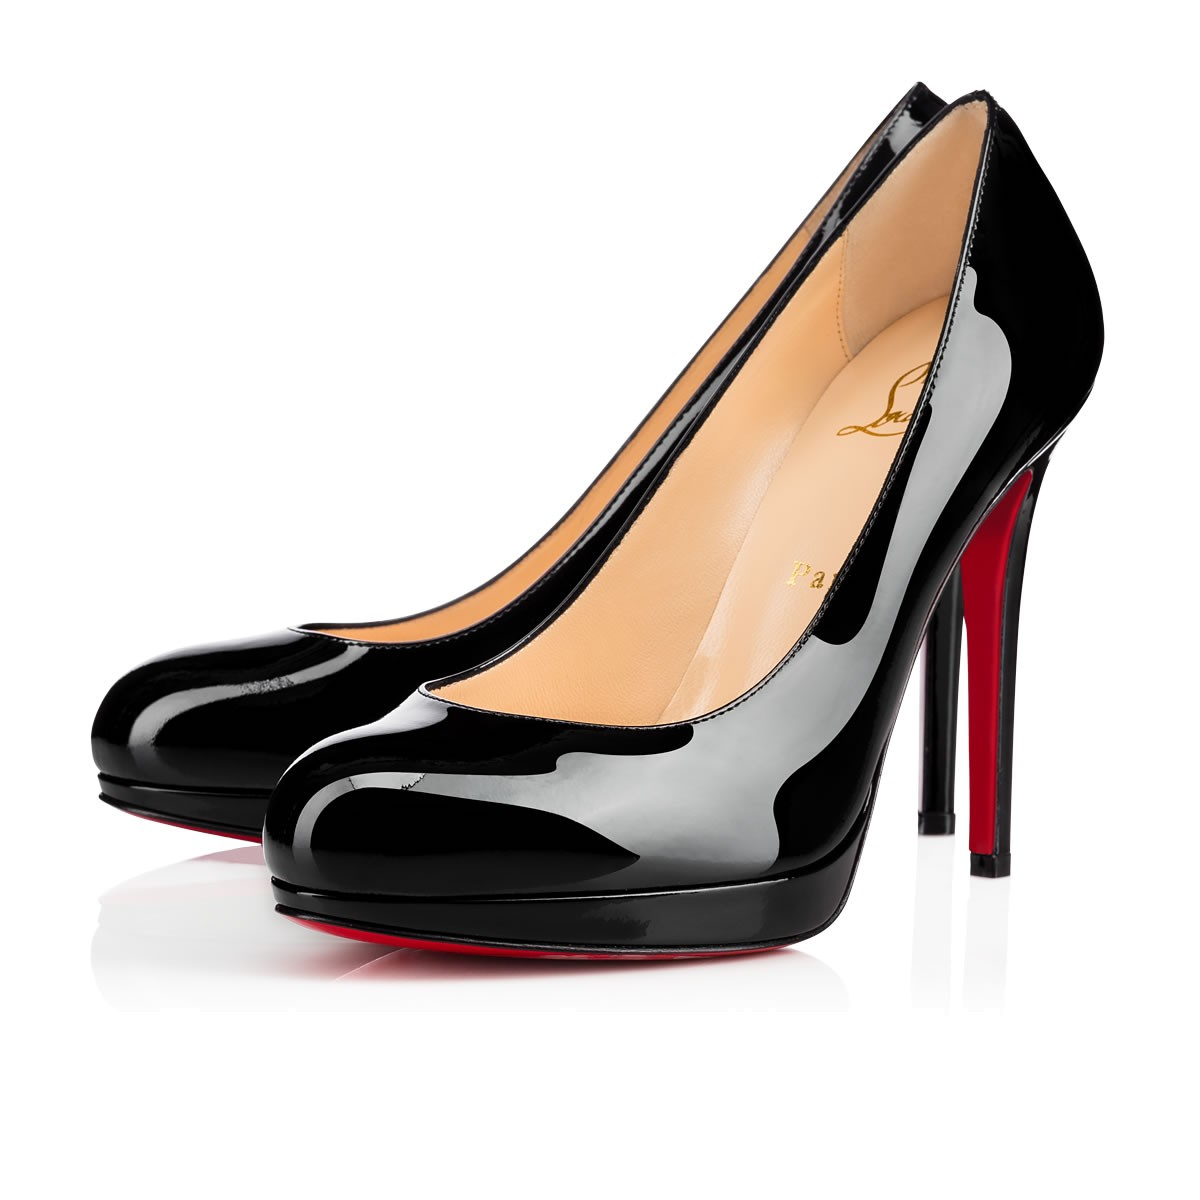 Buy Christian Louboutin Shoes Now, Pay Later